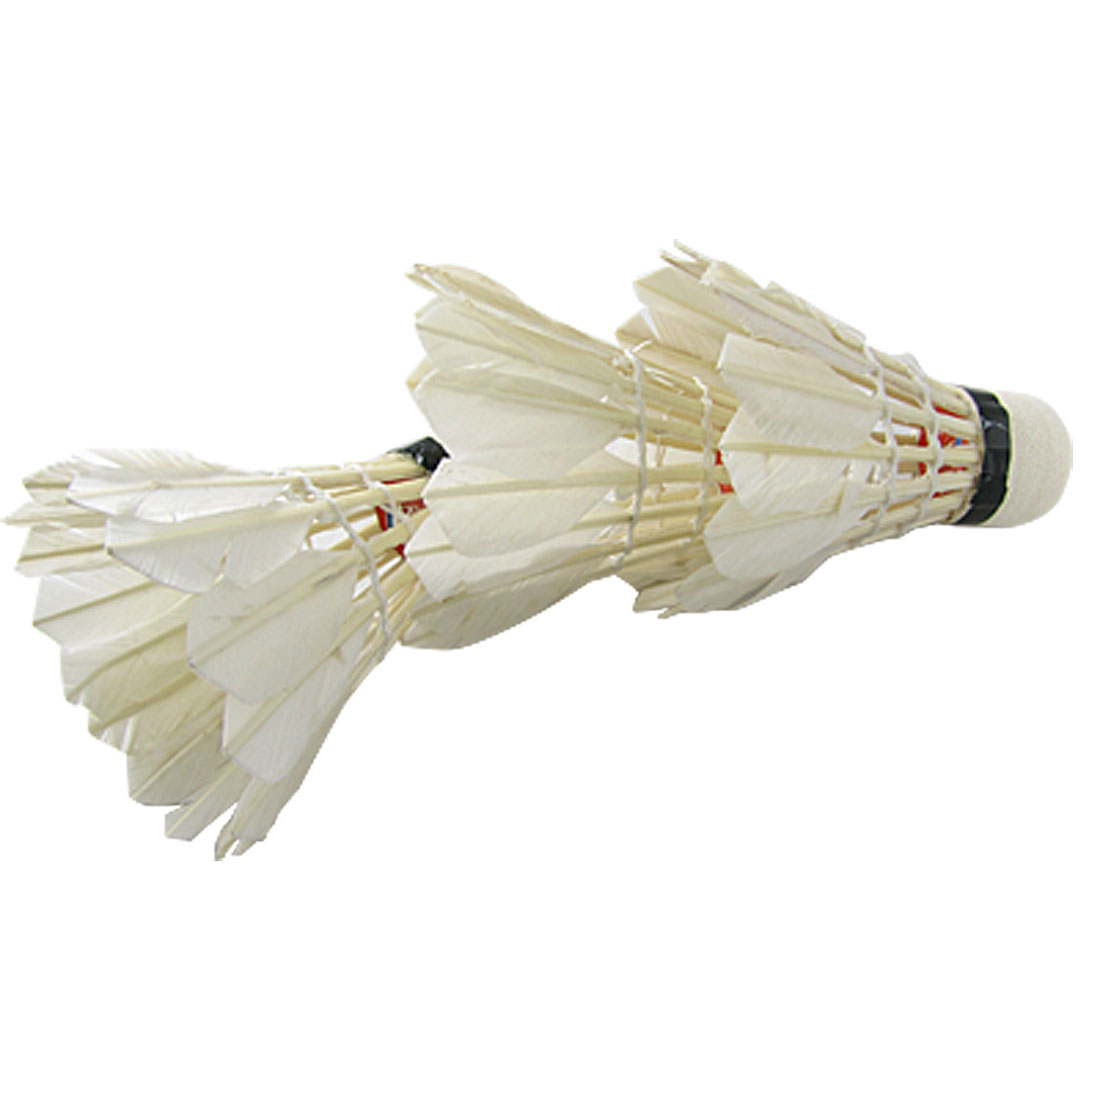 5 PCS JHO-White Goose Feather Badminton Shuttlecock 3pcs W Carboard Cylinder